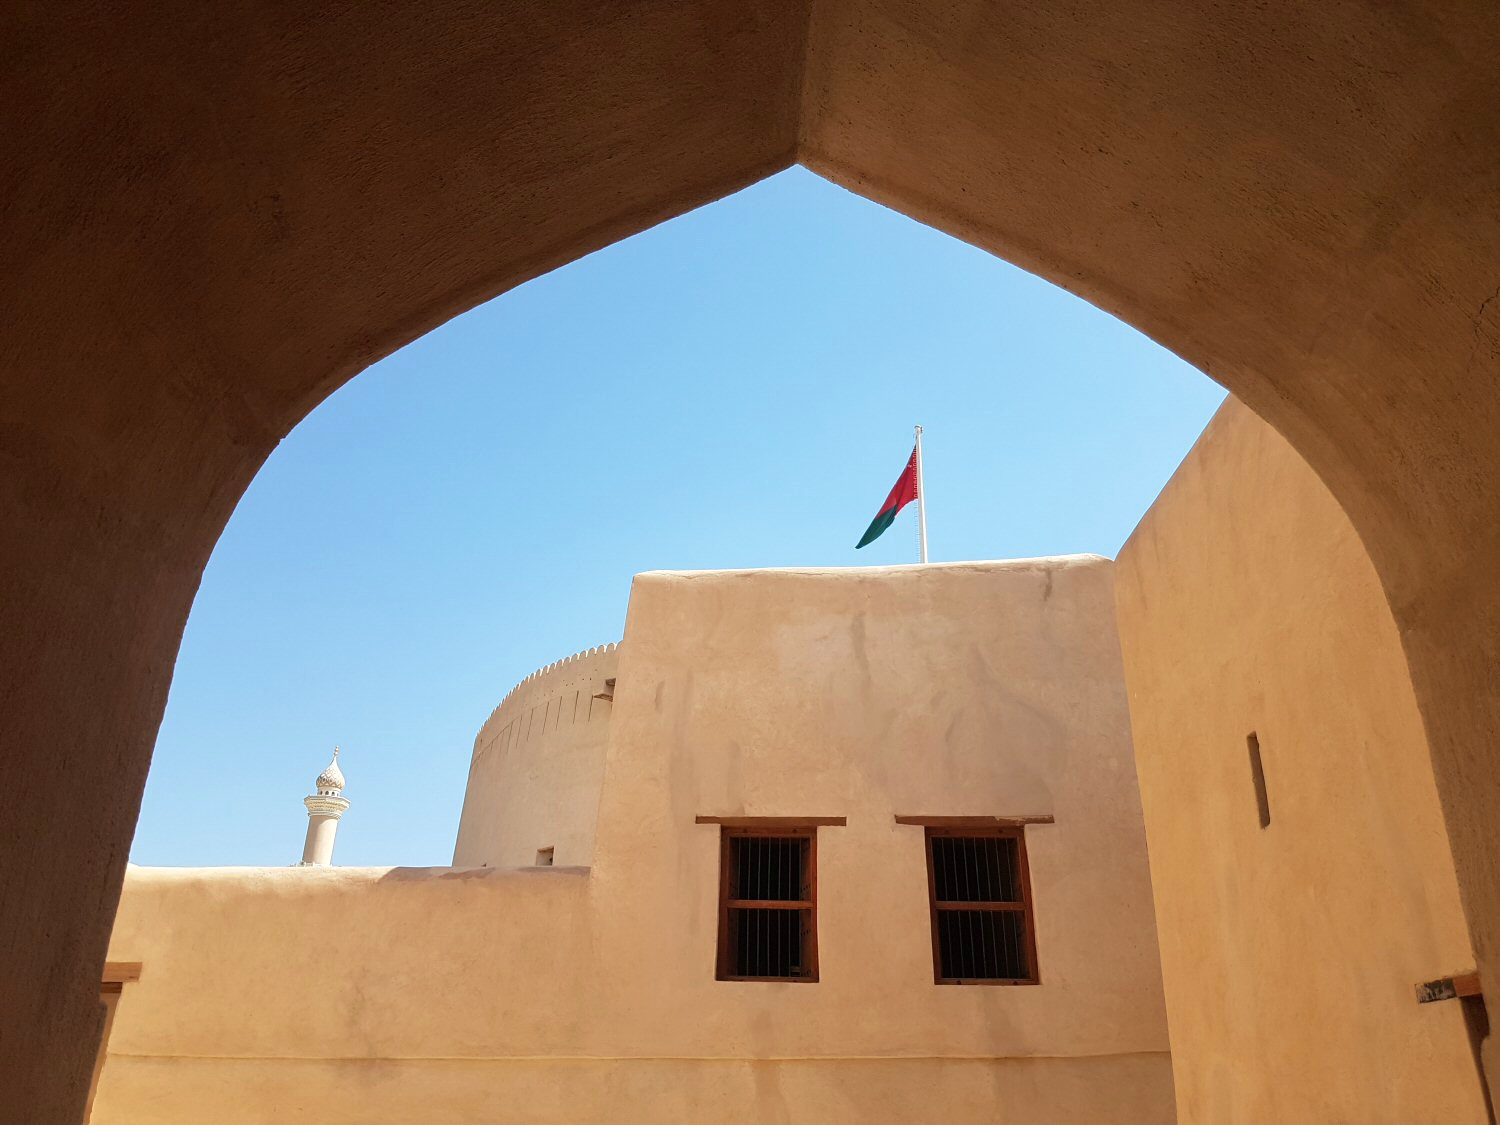 A view of a flag flying above the buildings of Nizwa fort in Oman seen through a pointed archway - my nine reasons to visit Oman with kids